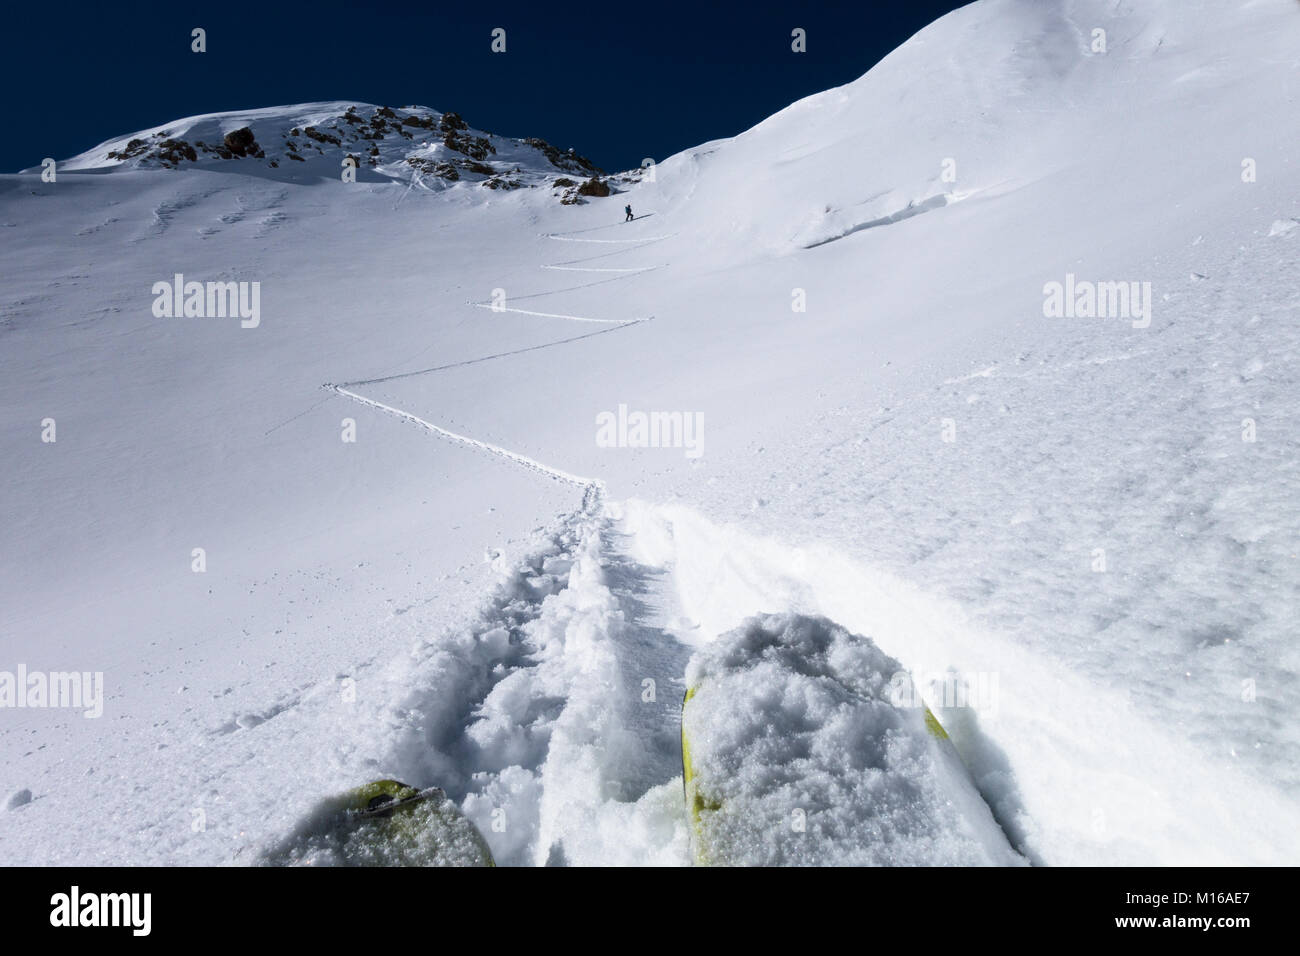 One skier following a leader making switchback turns up steep winter powder snow slope leading to alpine mountain Stock Photo